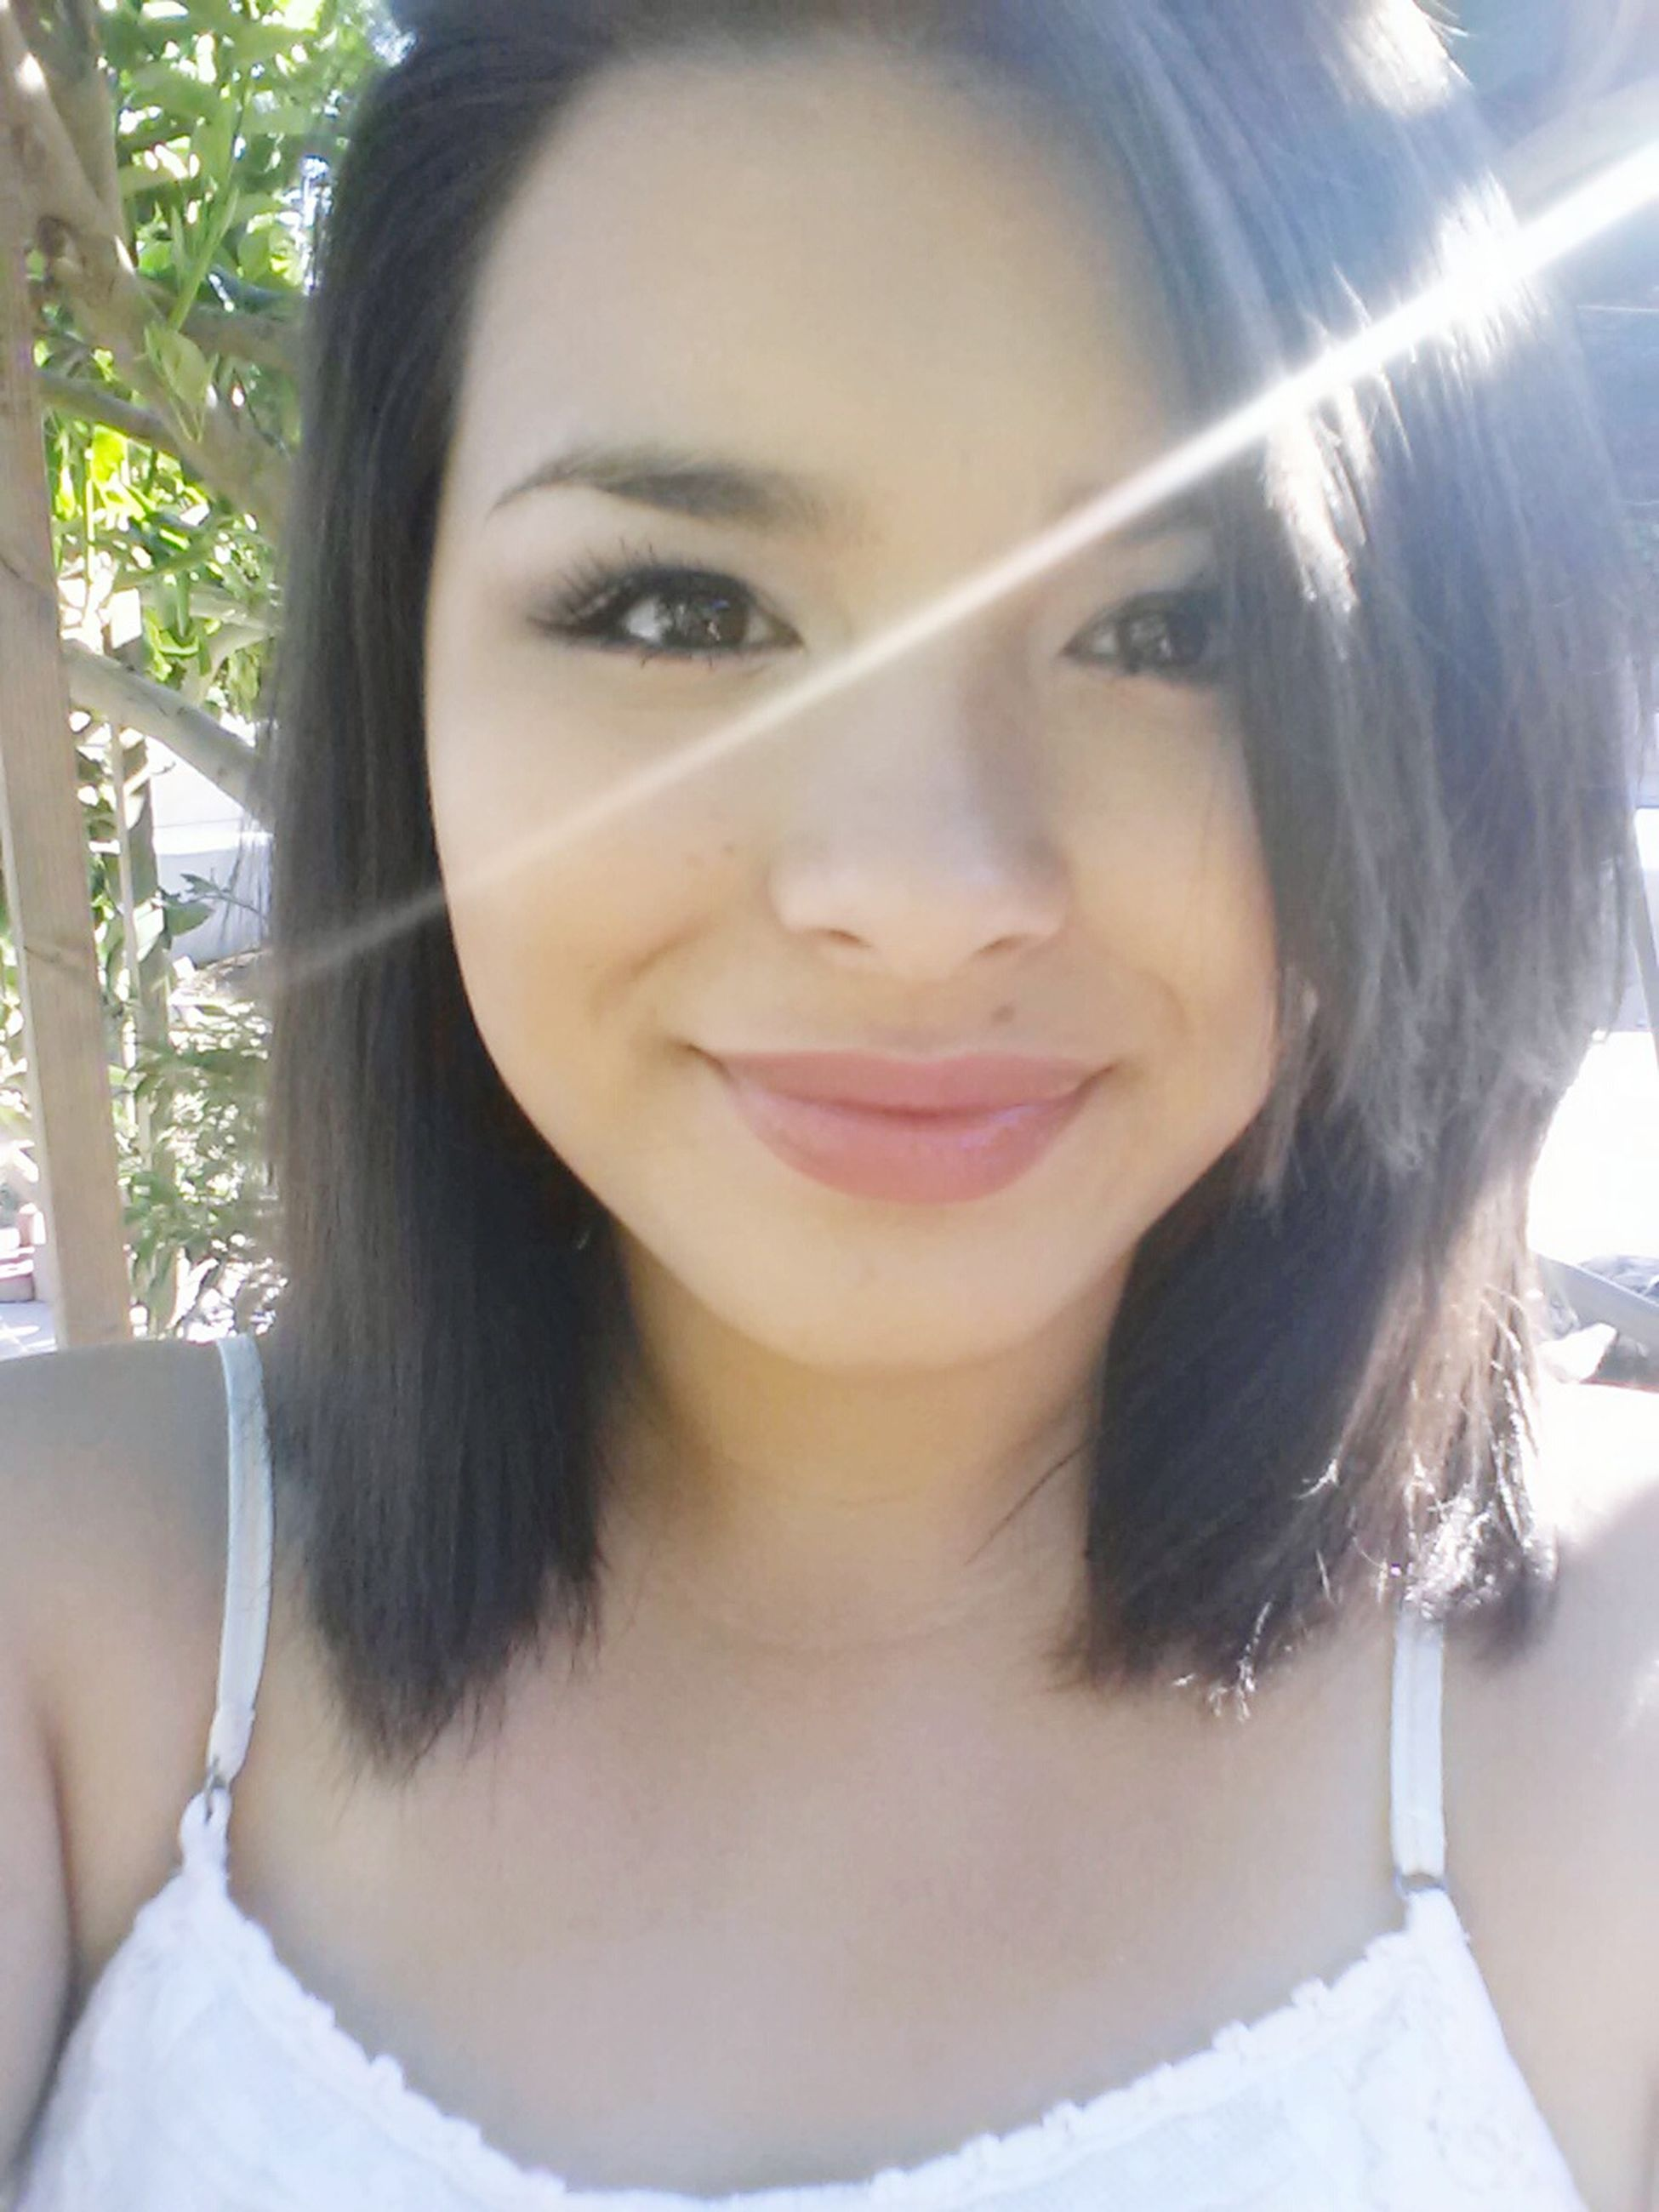 young adult, young women, portrait, looking at camera, person, lifestyles, front view, headshot, long hair, smiling, leisure activity, close-up, beauty, toothy smile, black hair, happiness, head and shoulders